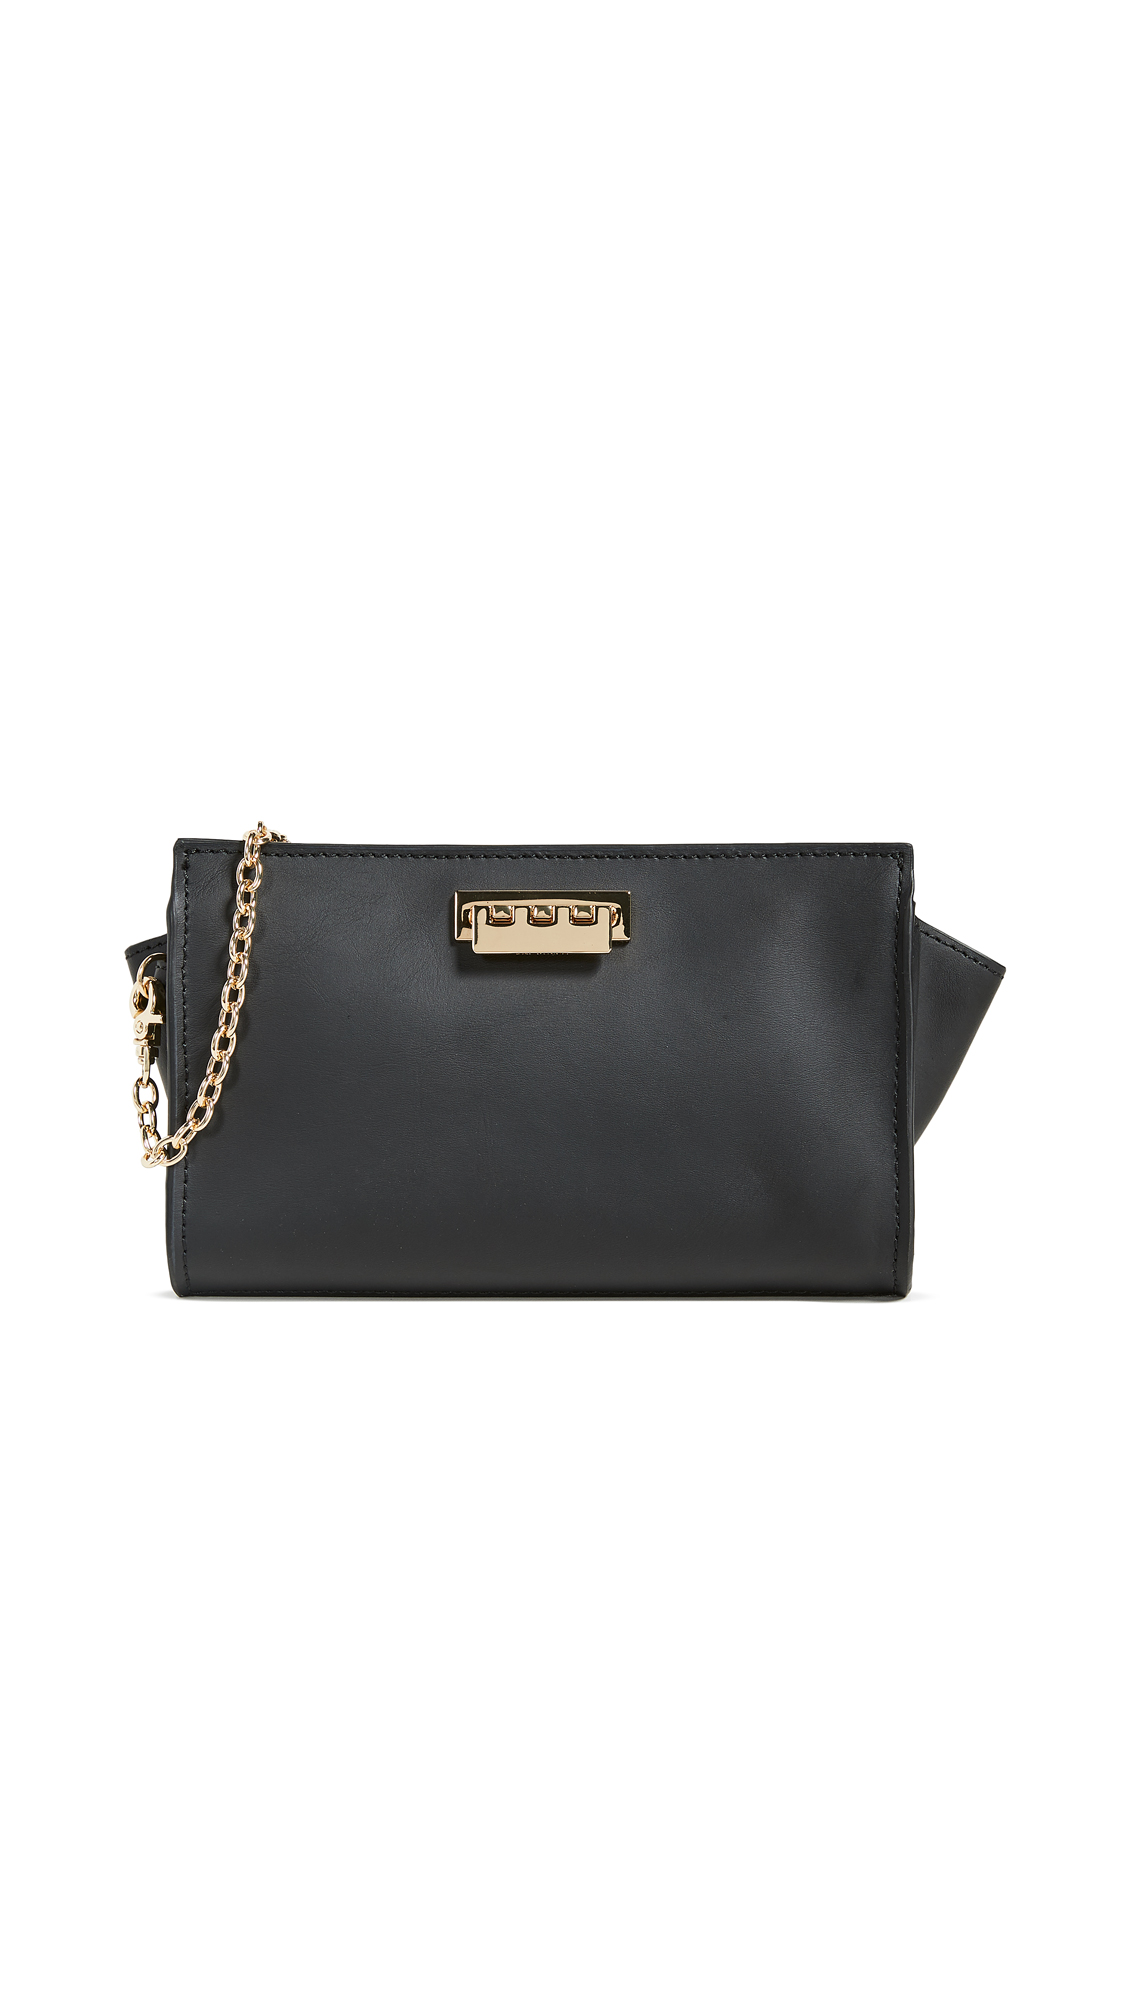 Eartha Iconic Phone Wallet Crossbody Bag in Black